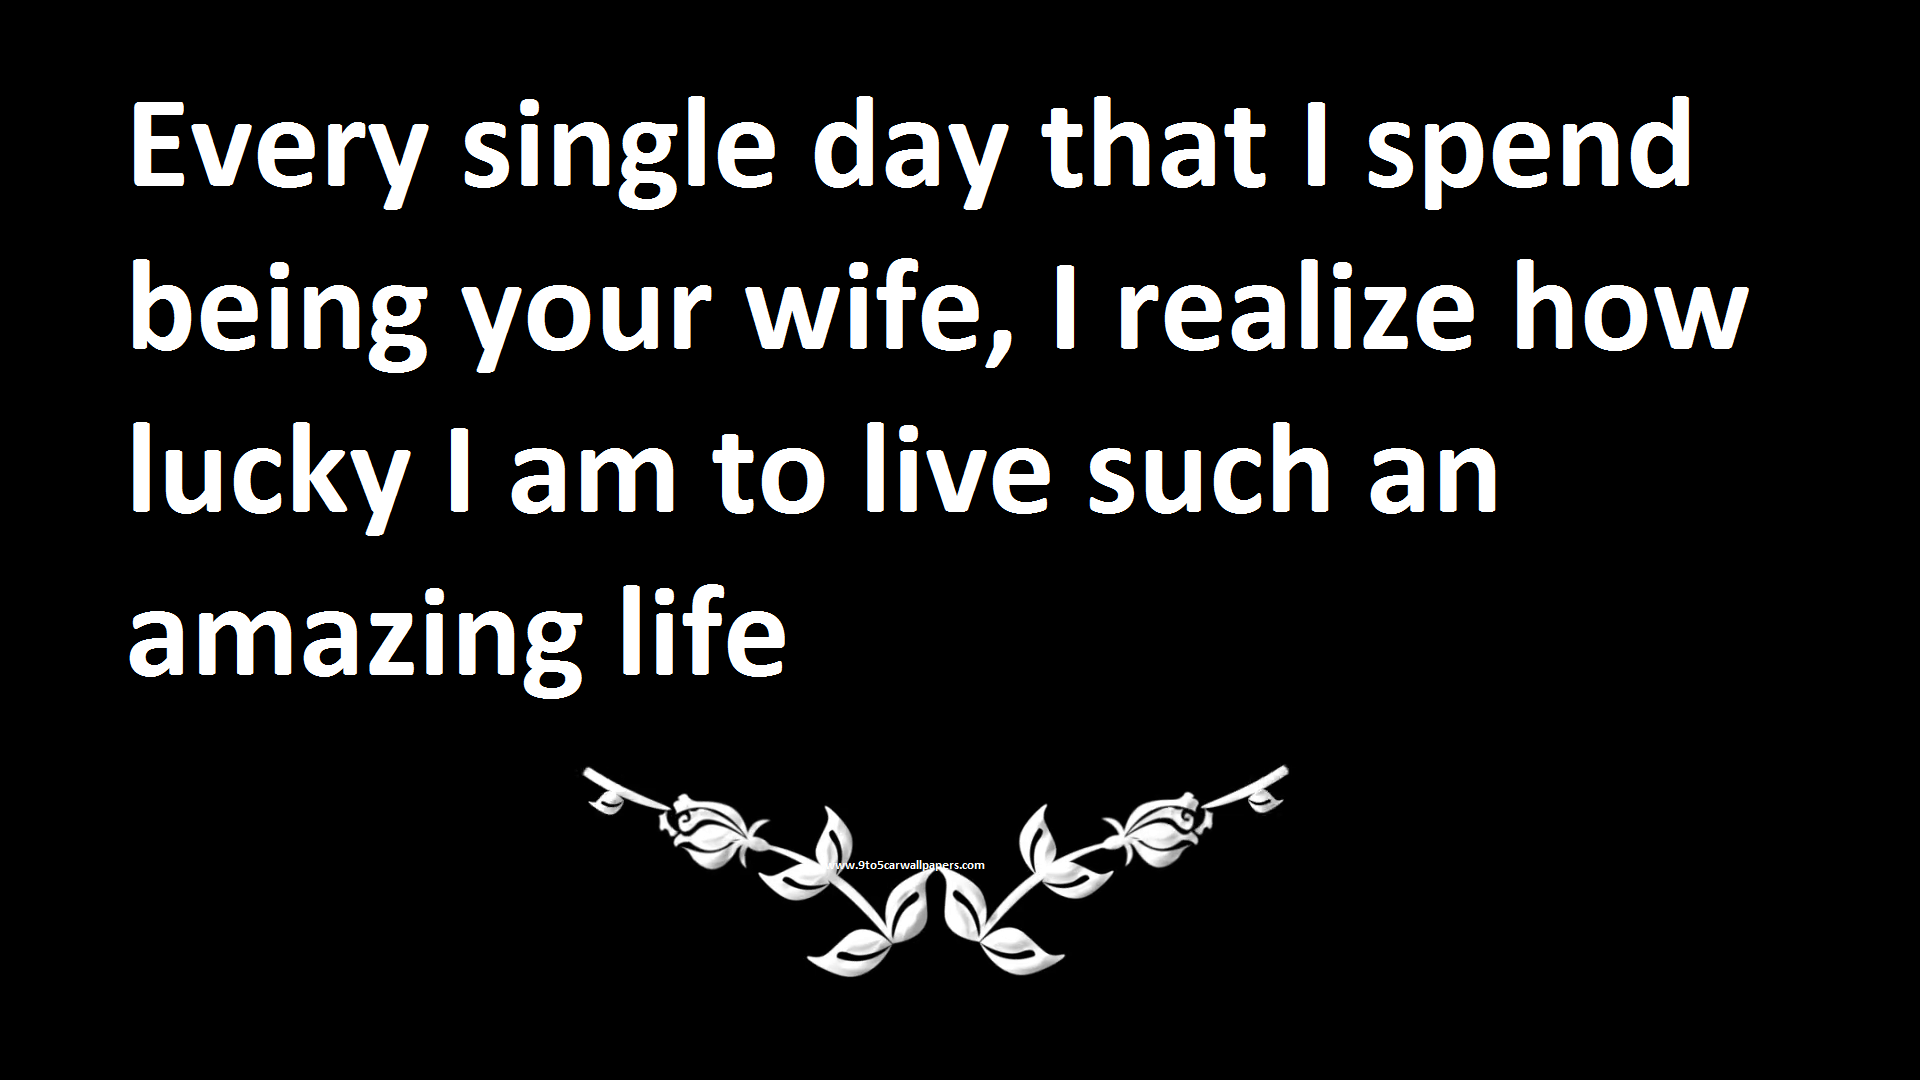 Emotional Quotes on Husband Wife Relationship - Latest World Events